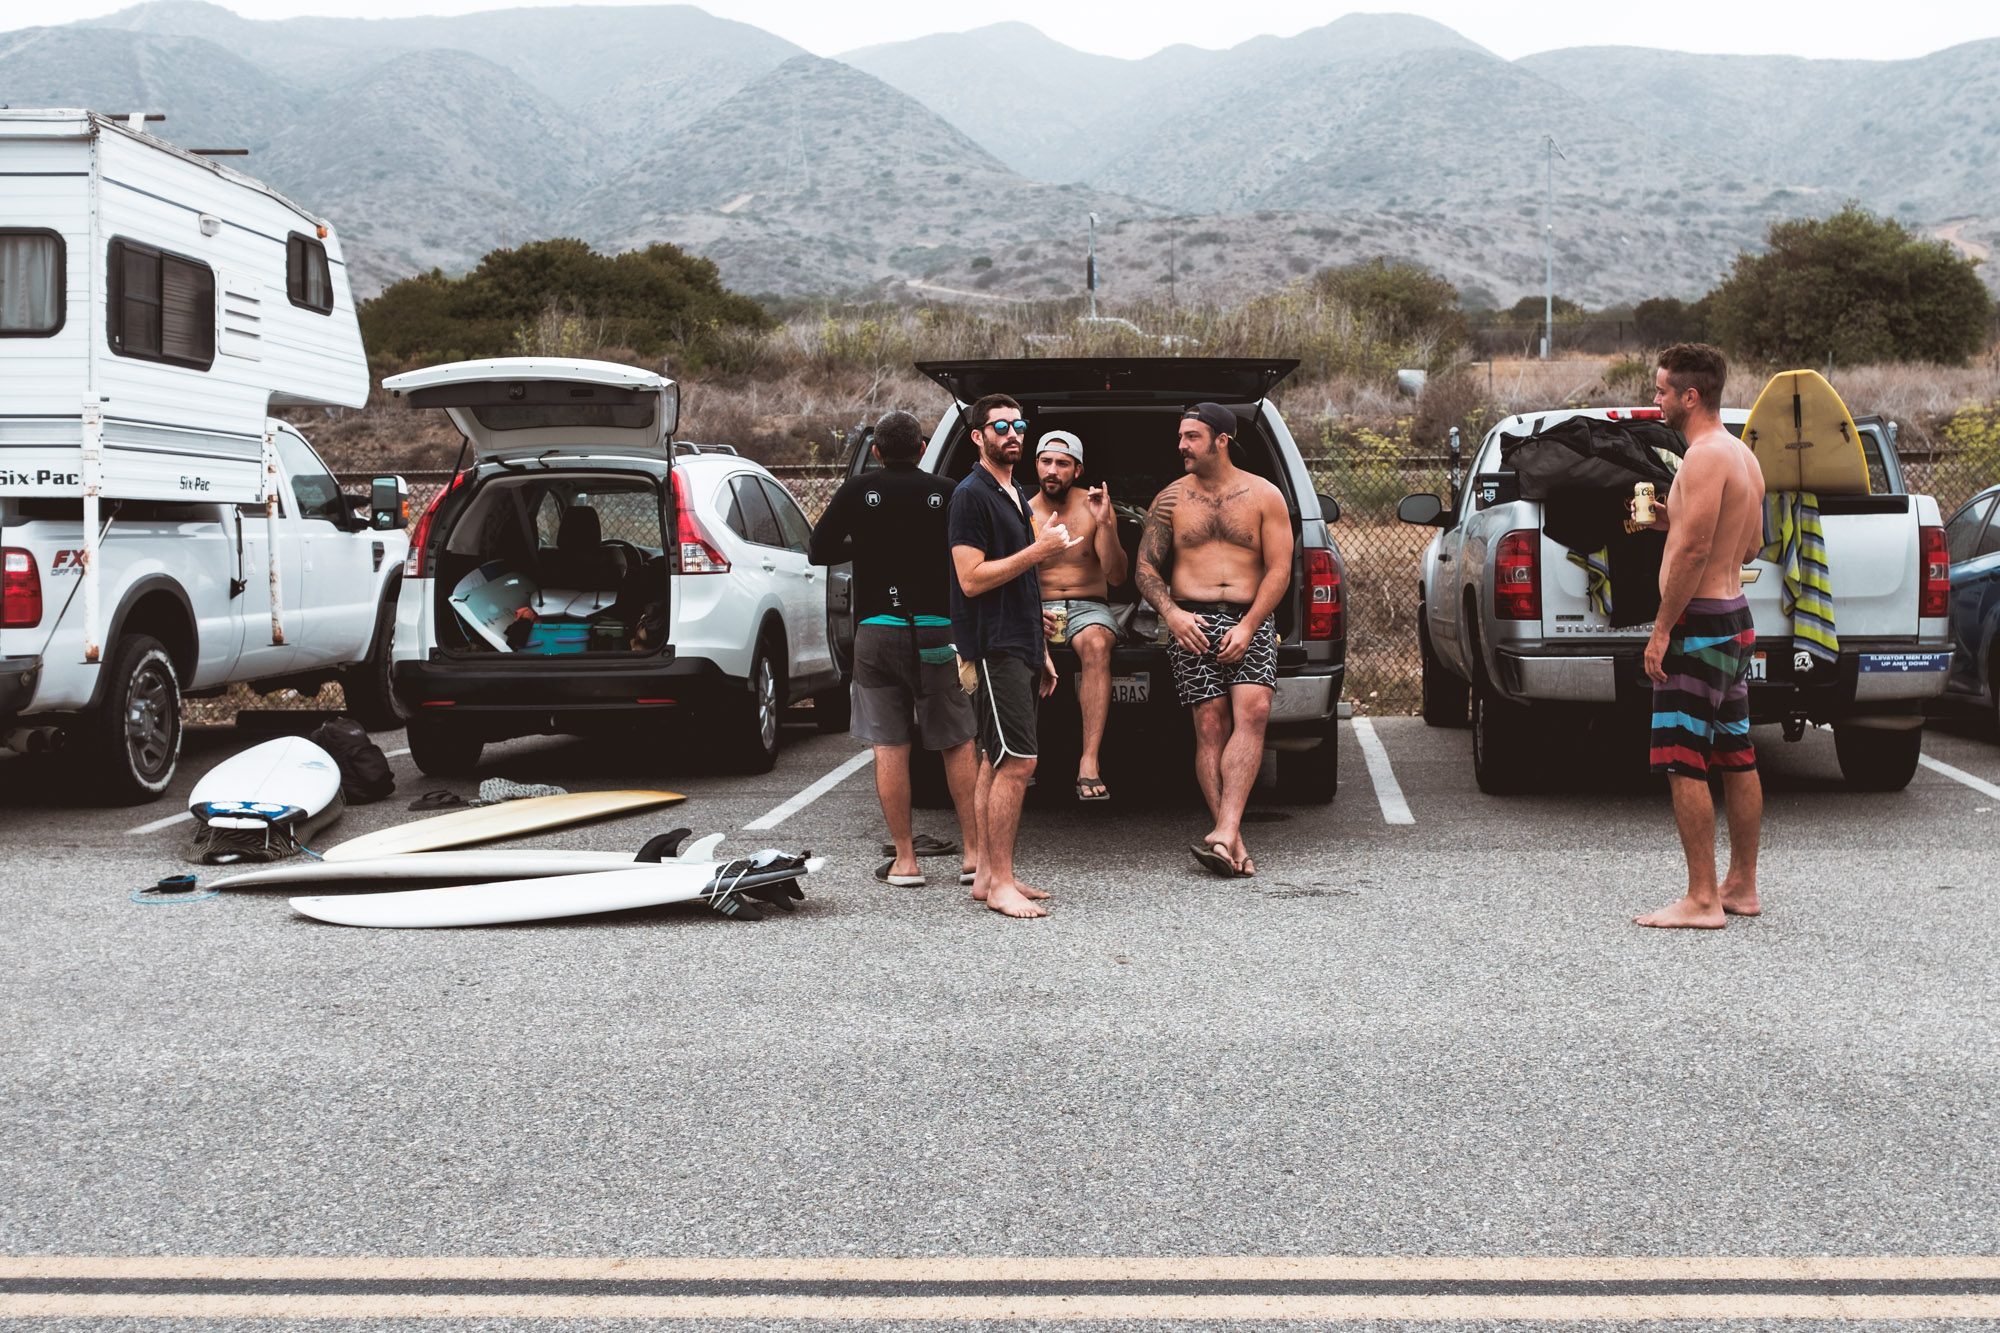 group-surfing-san-onofre